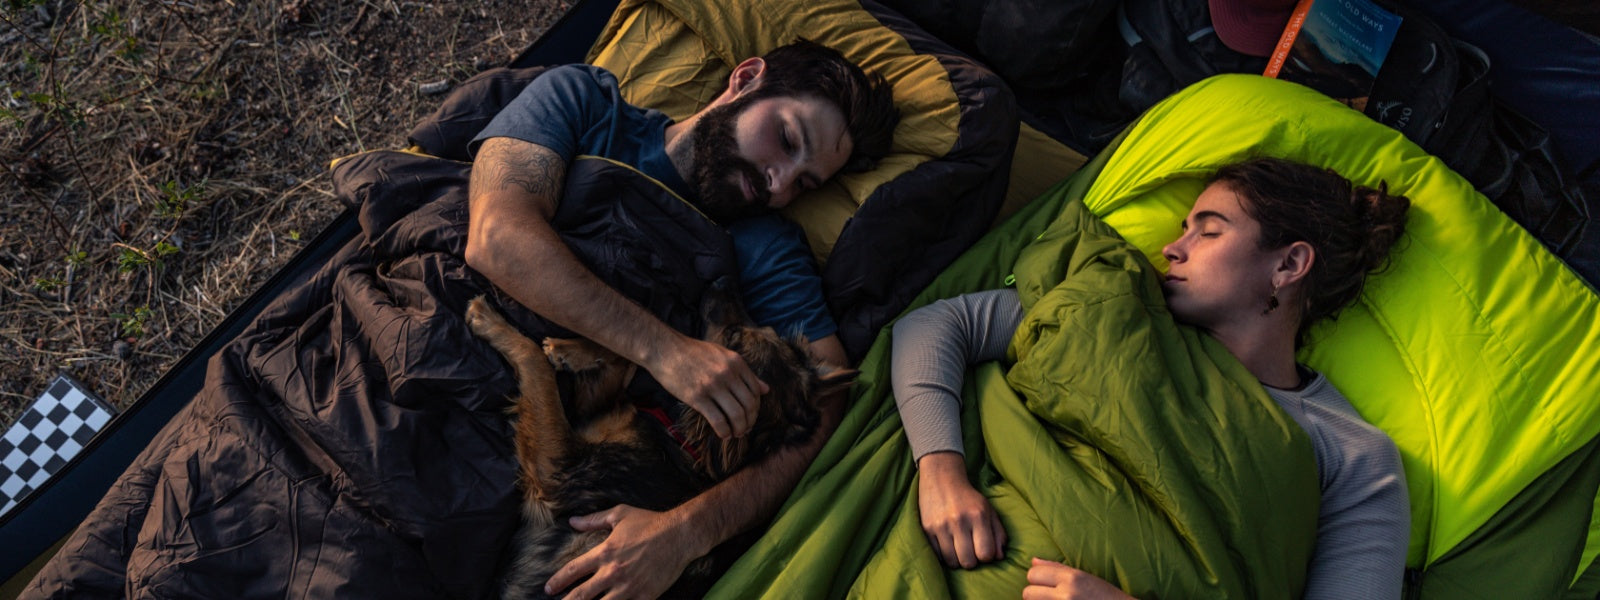 The Zenbivy MotoBed™ is a complete system that includes a dual-layer mattress, fitted sheet with integrated hood, rectangular quilt, pillowcase (for your pillow from home), and a convenient carry bag.